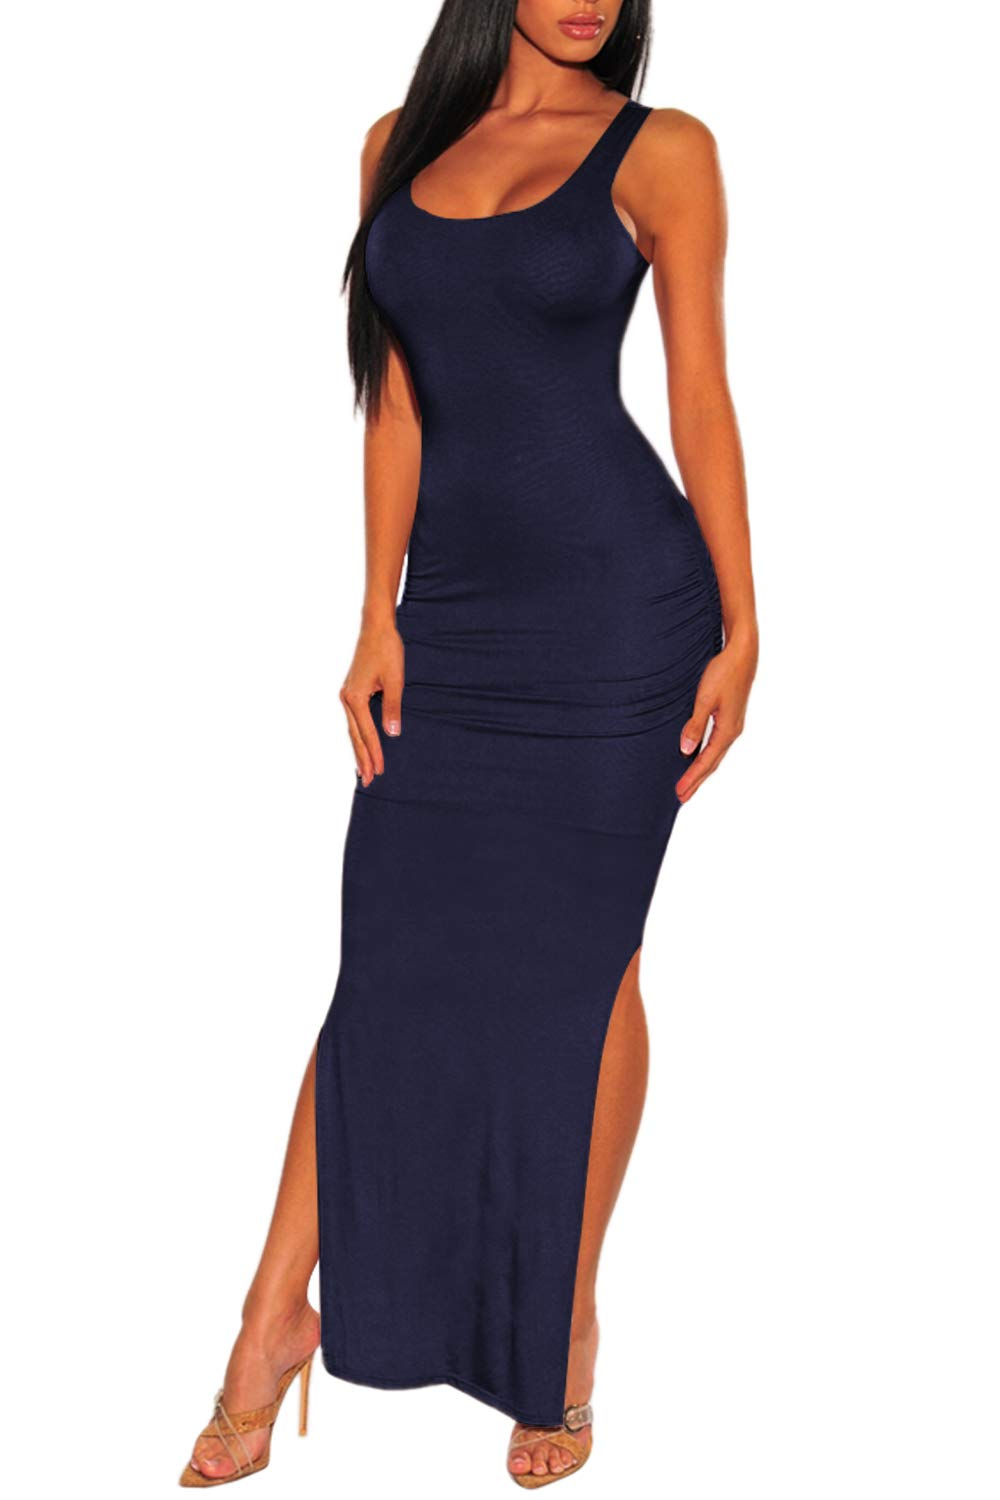 Available at Amazon: Meenew Women's Sexy Low Cut Side Shirring Bodycon High Slit Long Dress